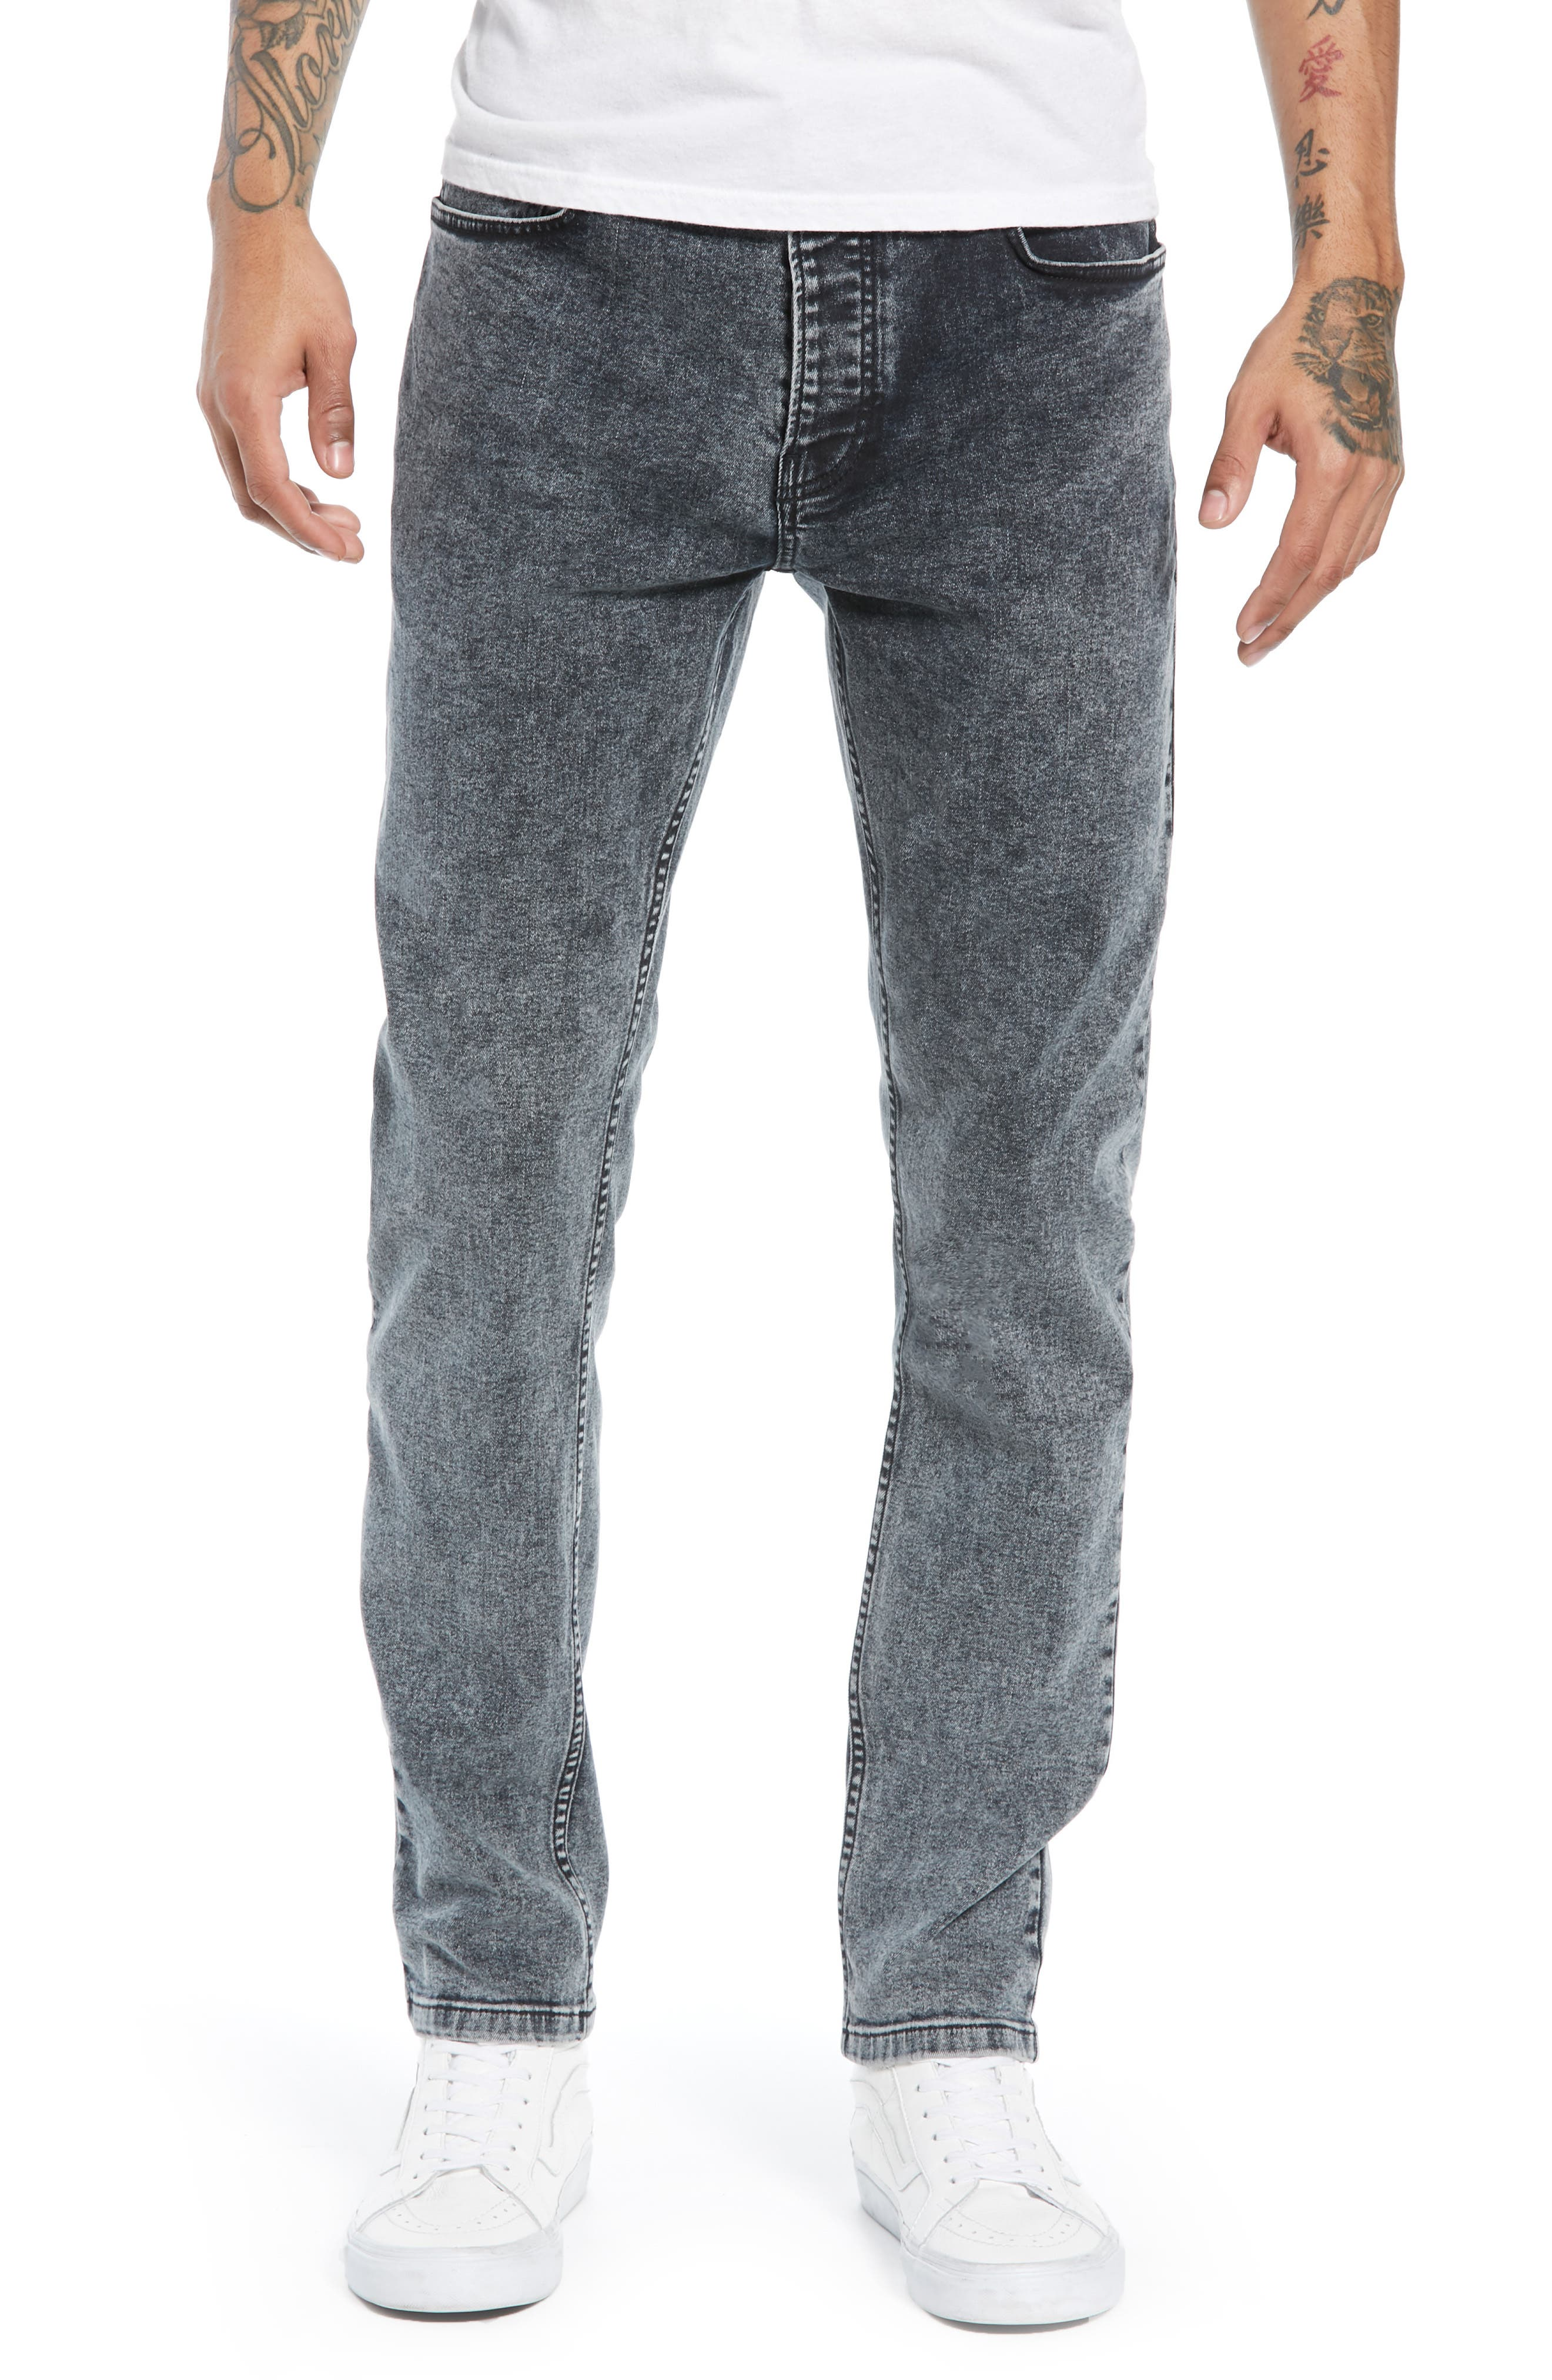 Acid Wash Stretch Skinny Jeans,                             Main thumbnail 1, color,                             GREY